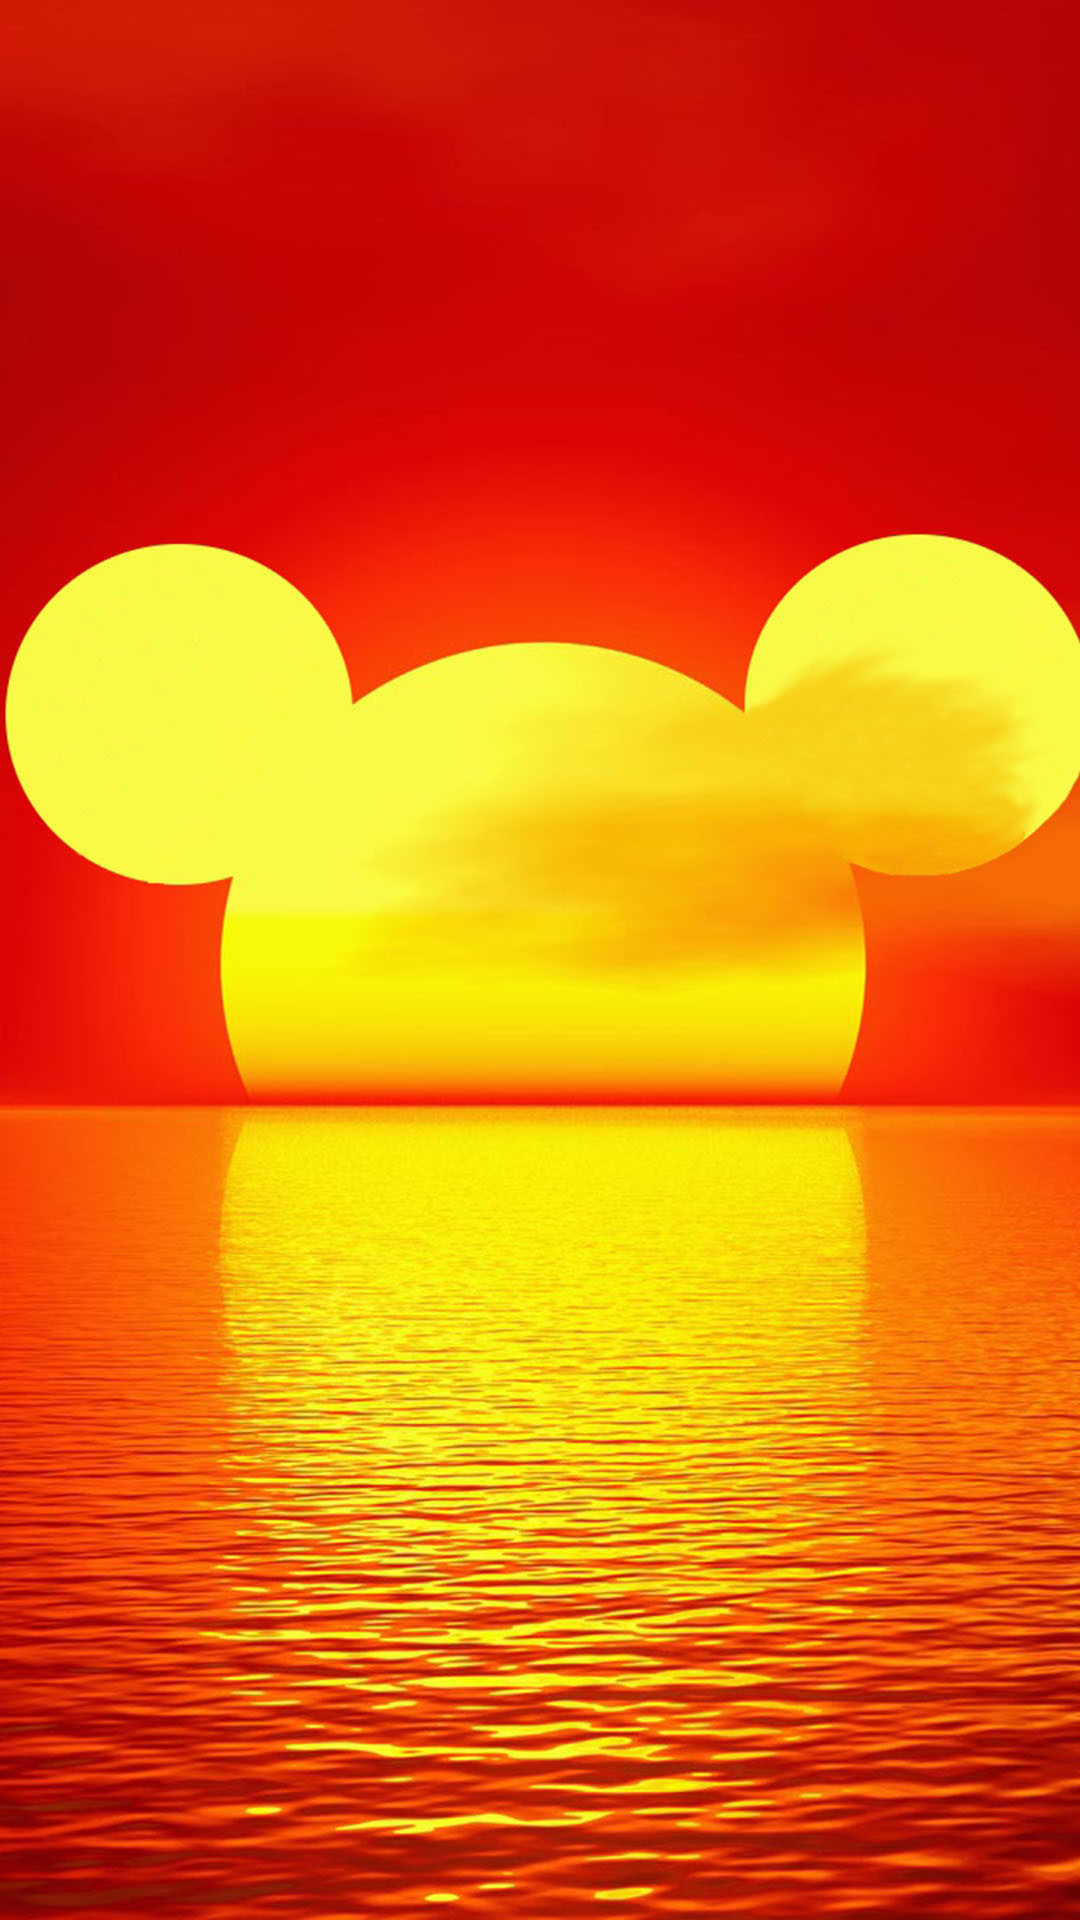 1080x1920 mickey mouse wallpaper iphone 6 plus (4)